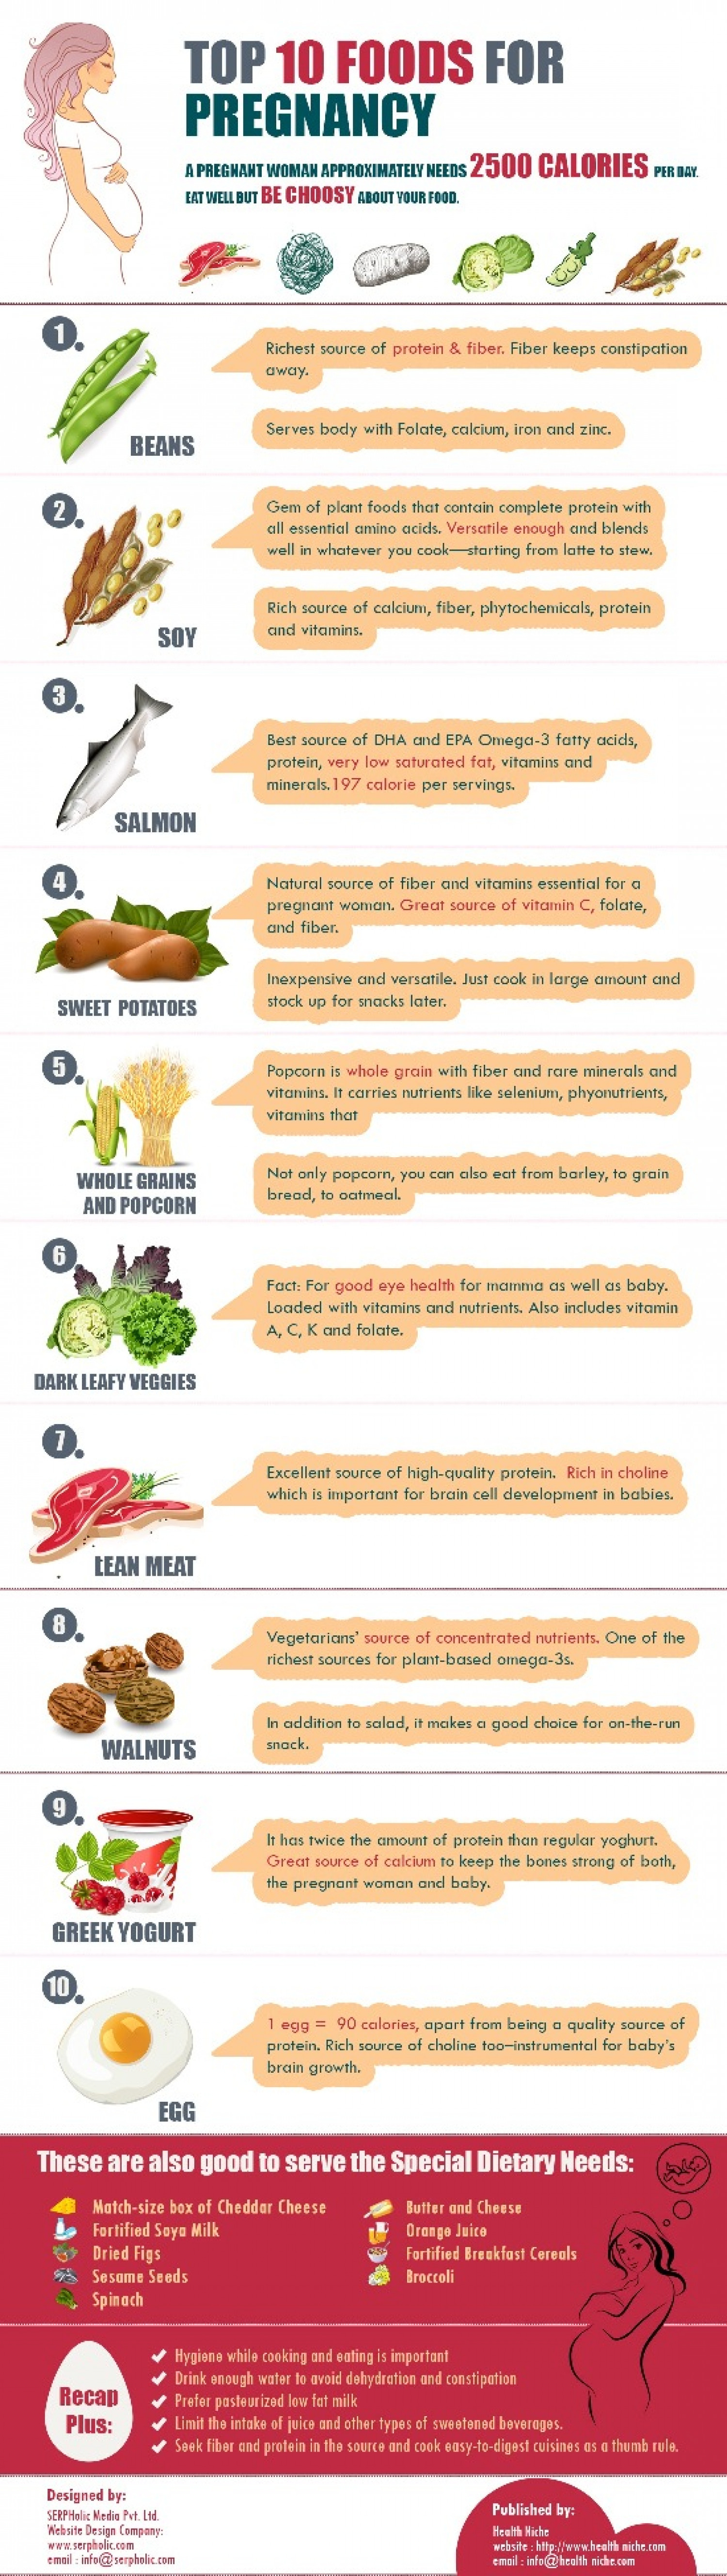 Top 10 Foods for Pregnancy Infographic